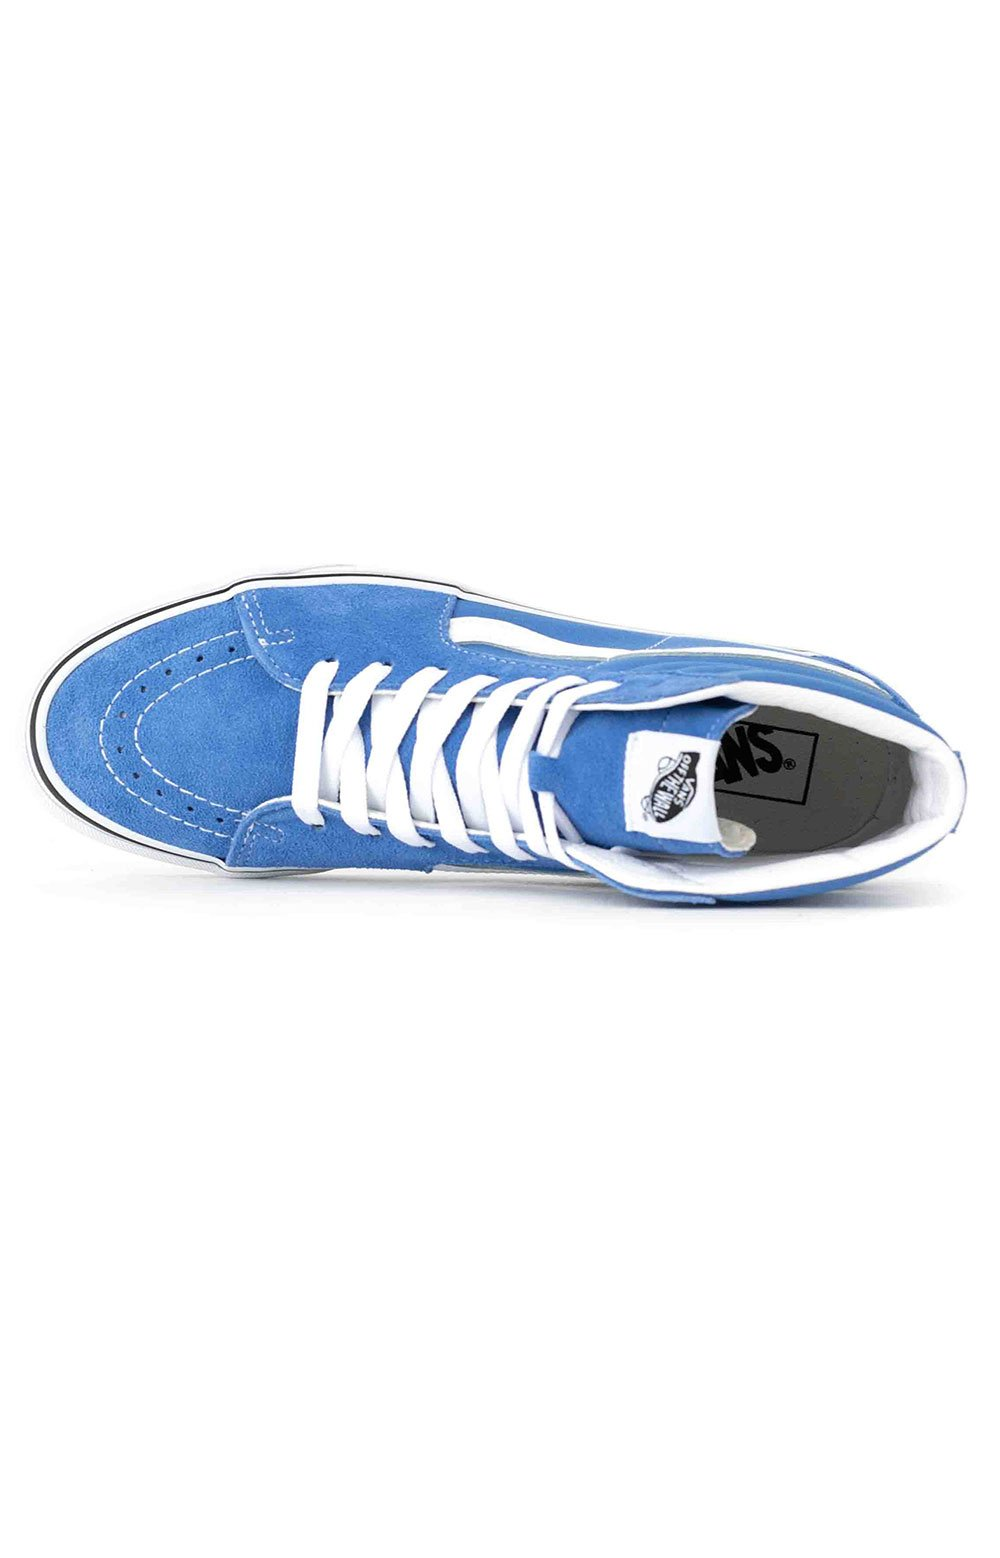 (U3C1UJ) Sk8-Hi Shoes - Nebulas Blue  2